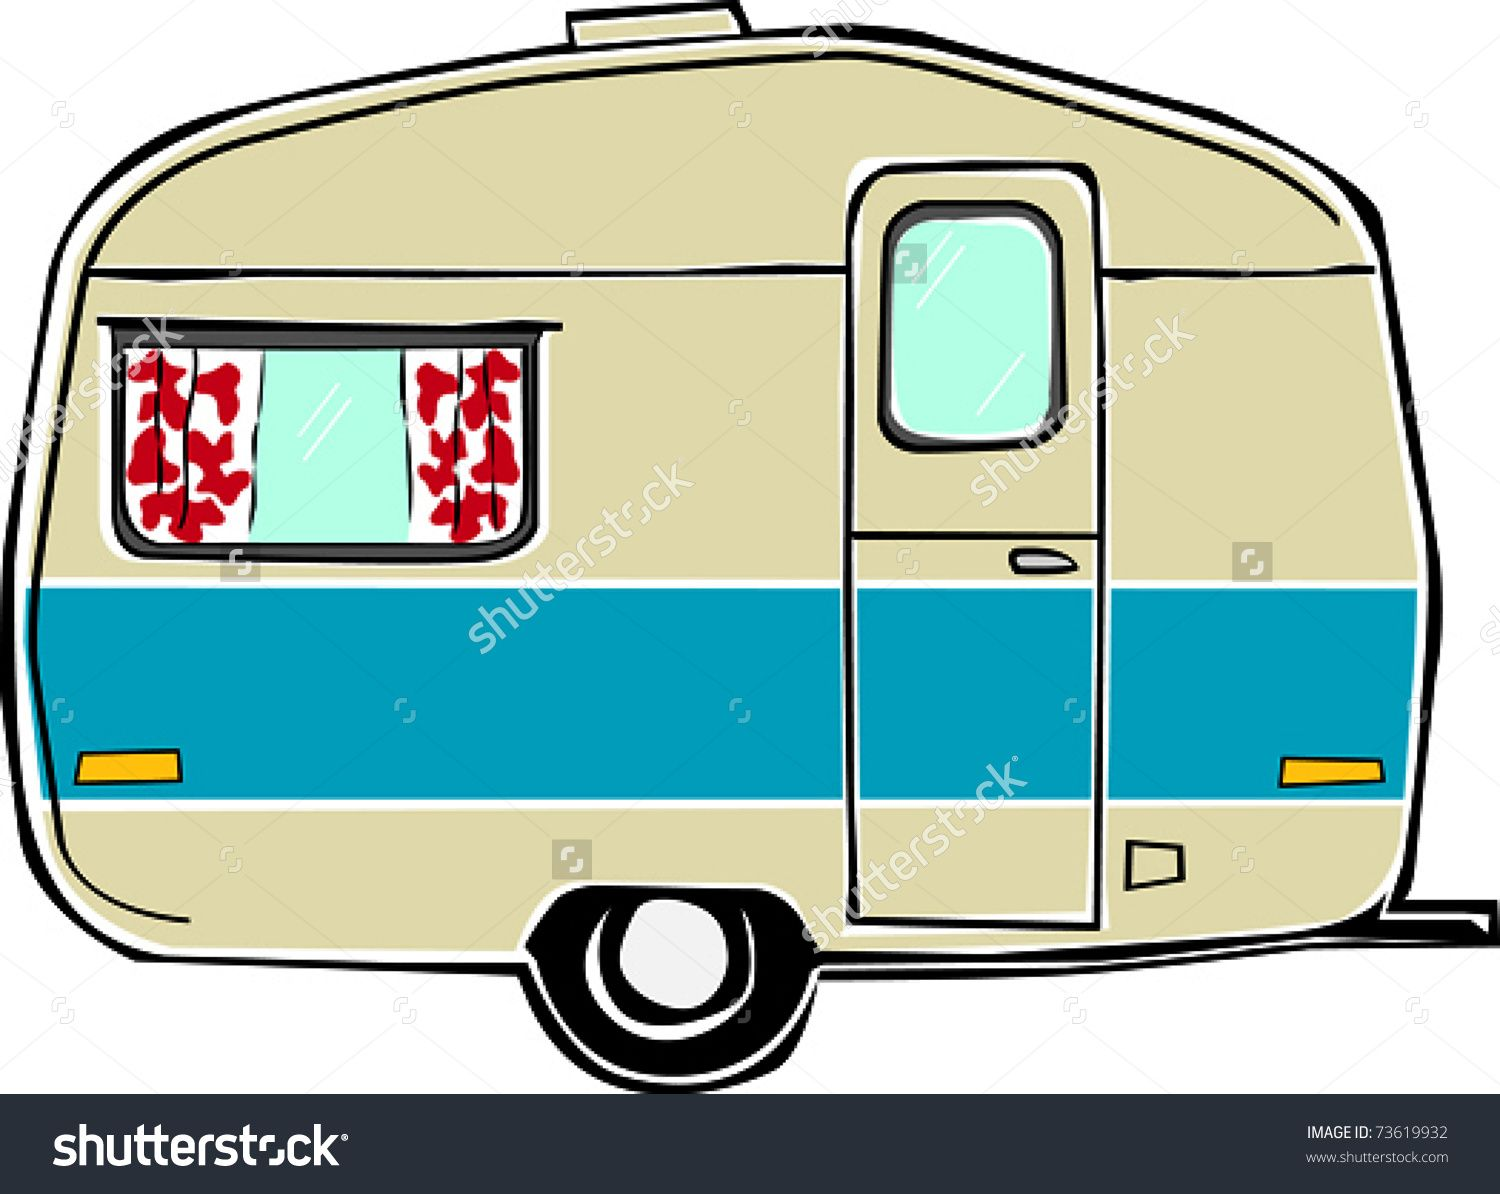 Retro Happy Hippie Vintage Travel Trailer Camper Vector Illustration